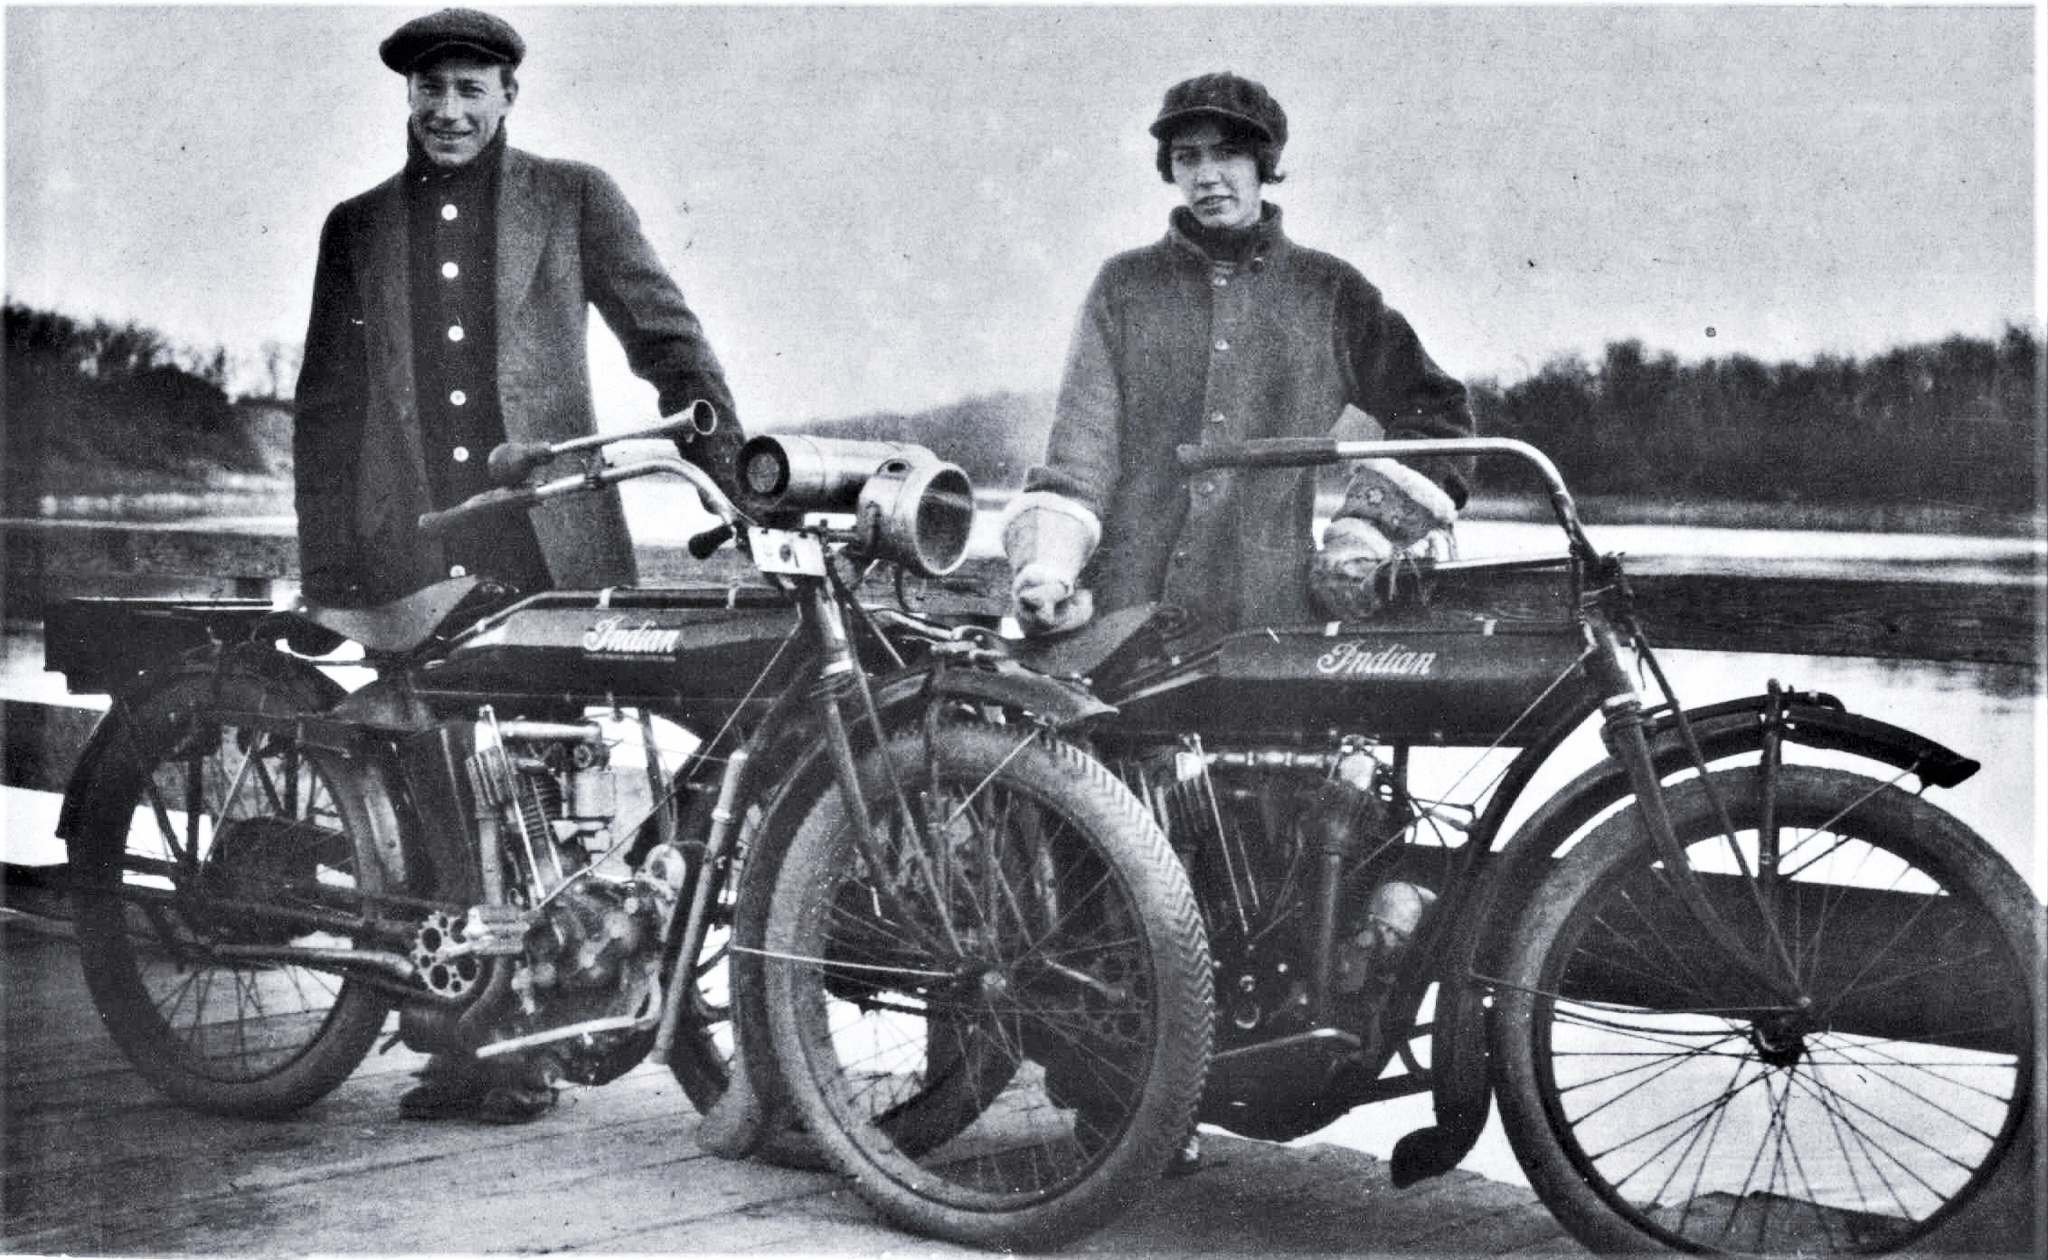 Sadie Grimm and her husband Jim Cruikshank with their Indian motorcycles.